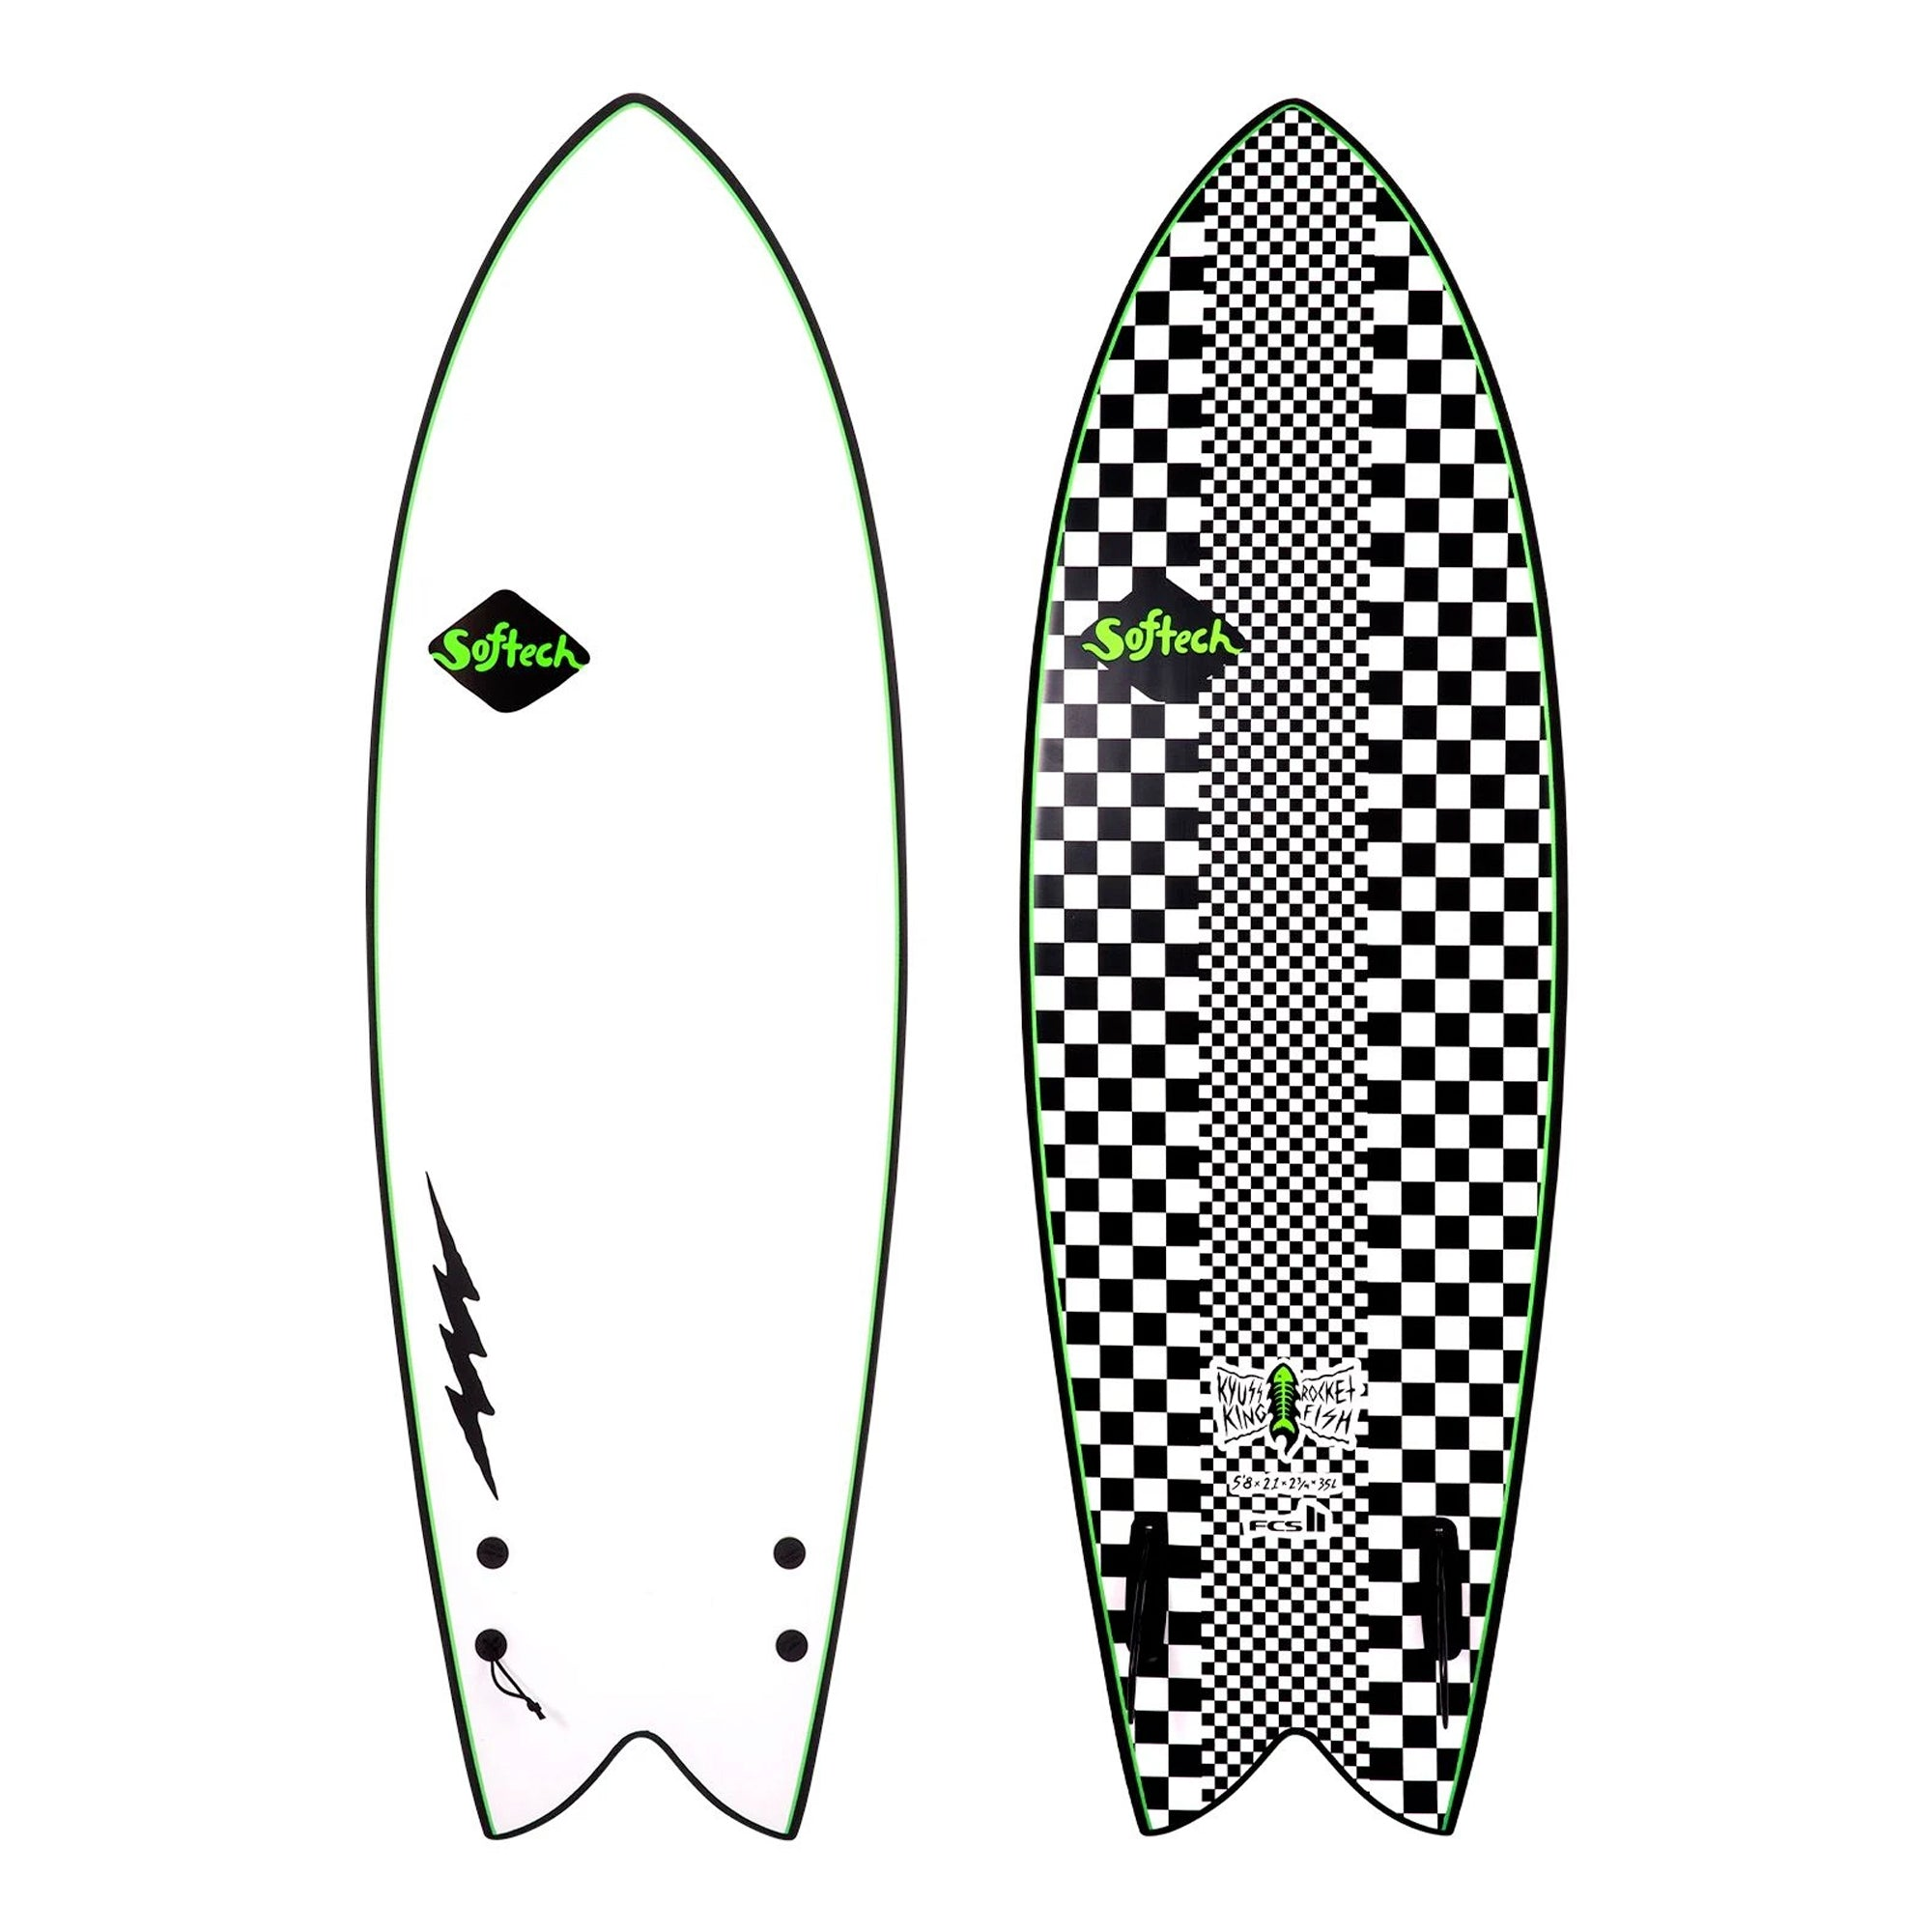 Softech Kyuss King Rocket Fish Soft Surfboard